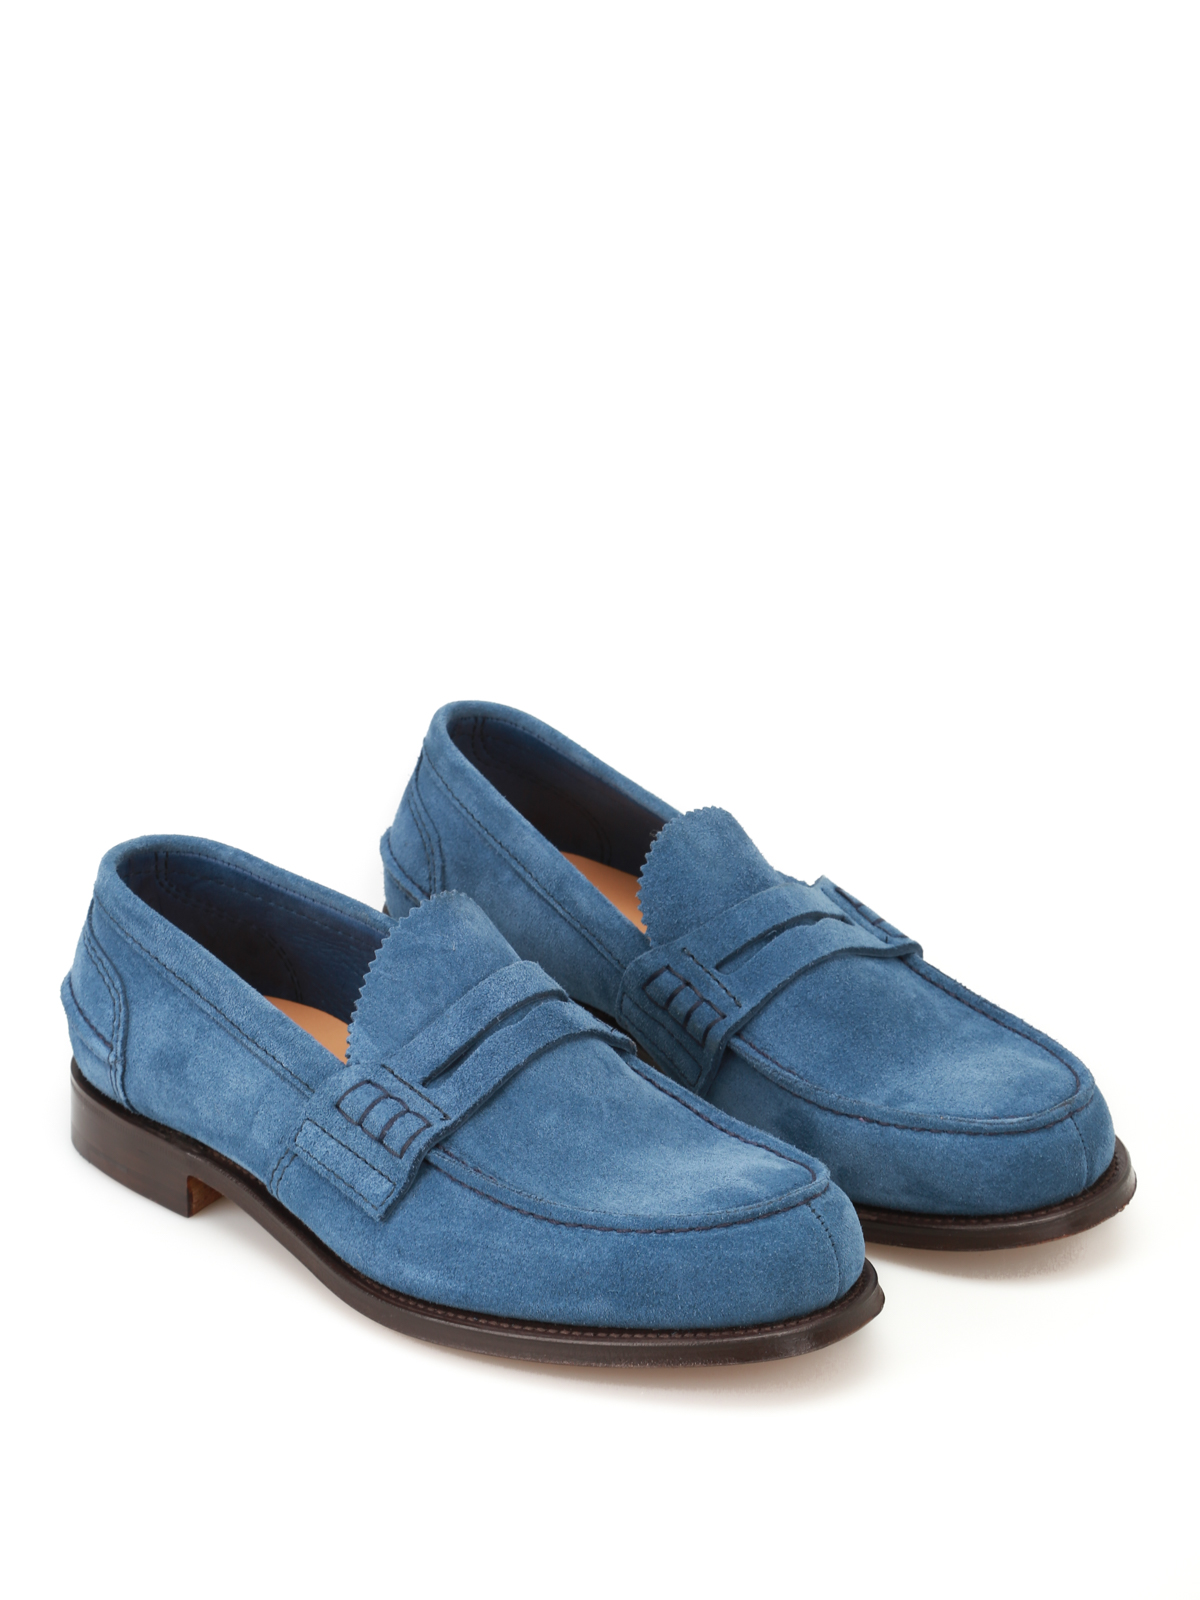 1f84e3530b7 Church s - Pembrey soft suede loafers - Loafers   Slippers - EDB003 ...